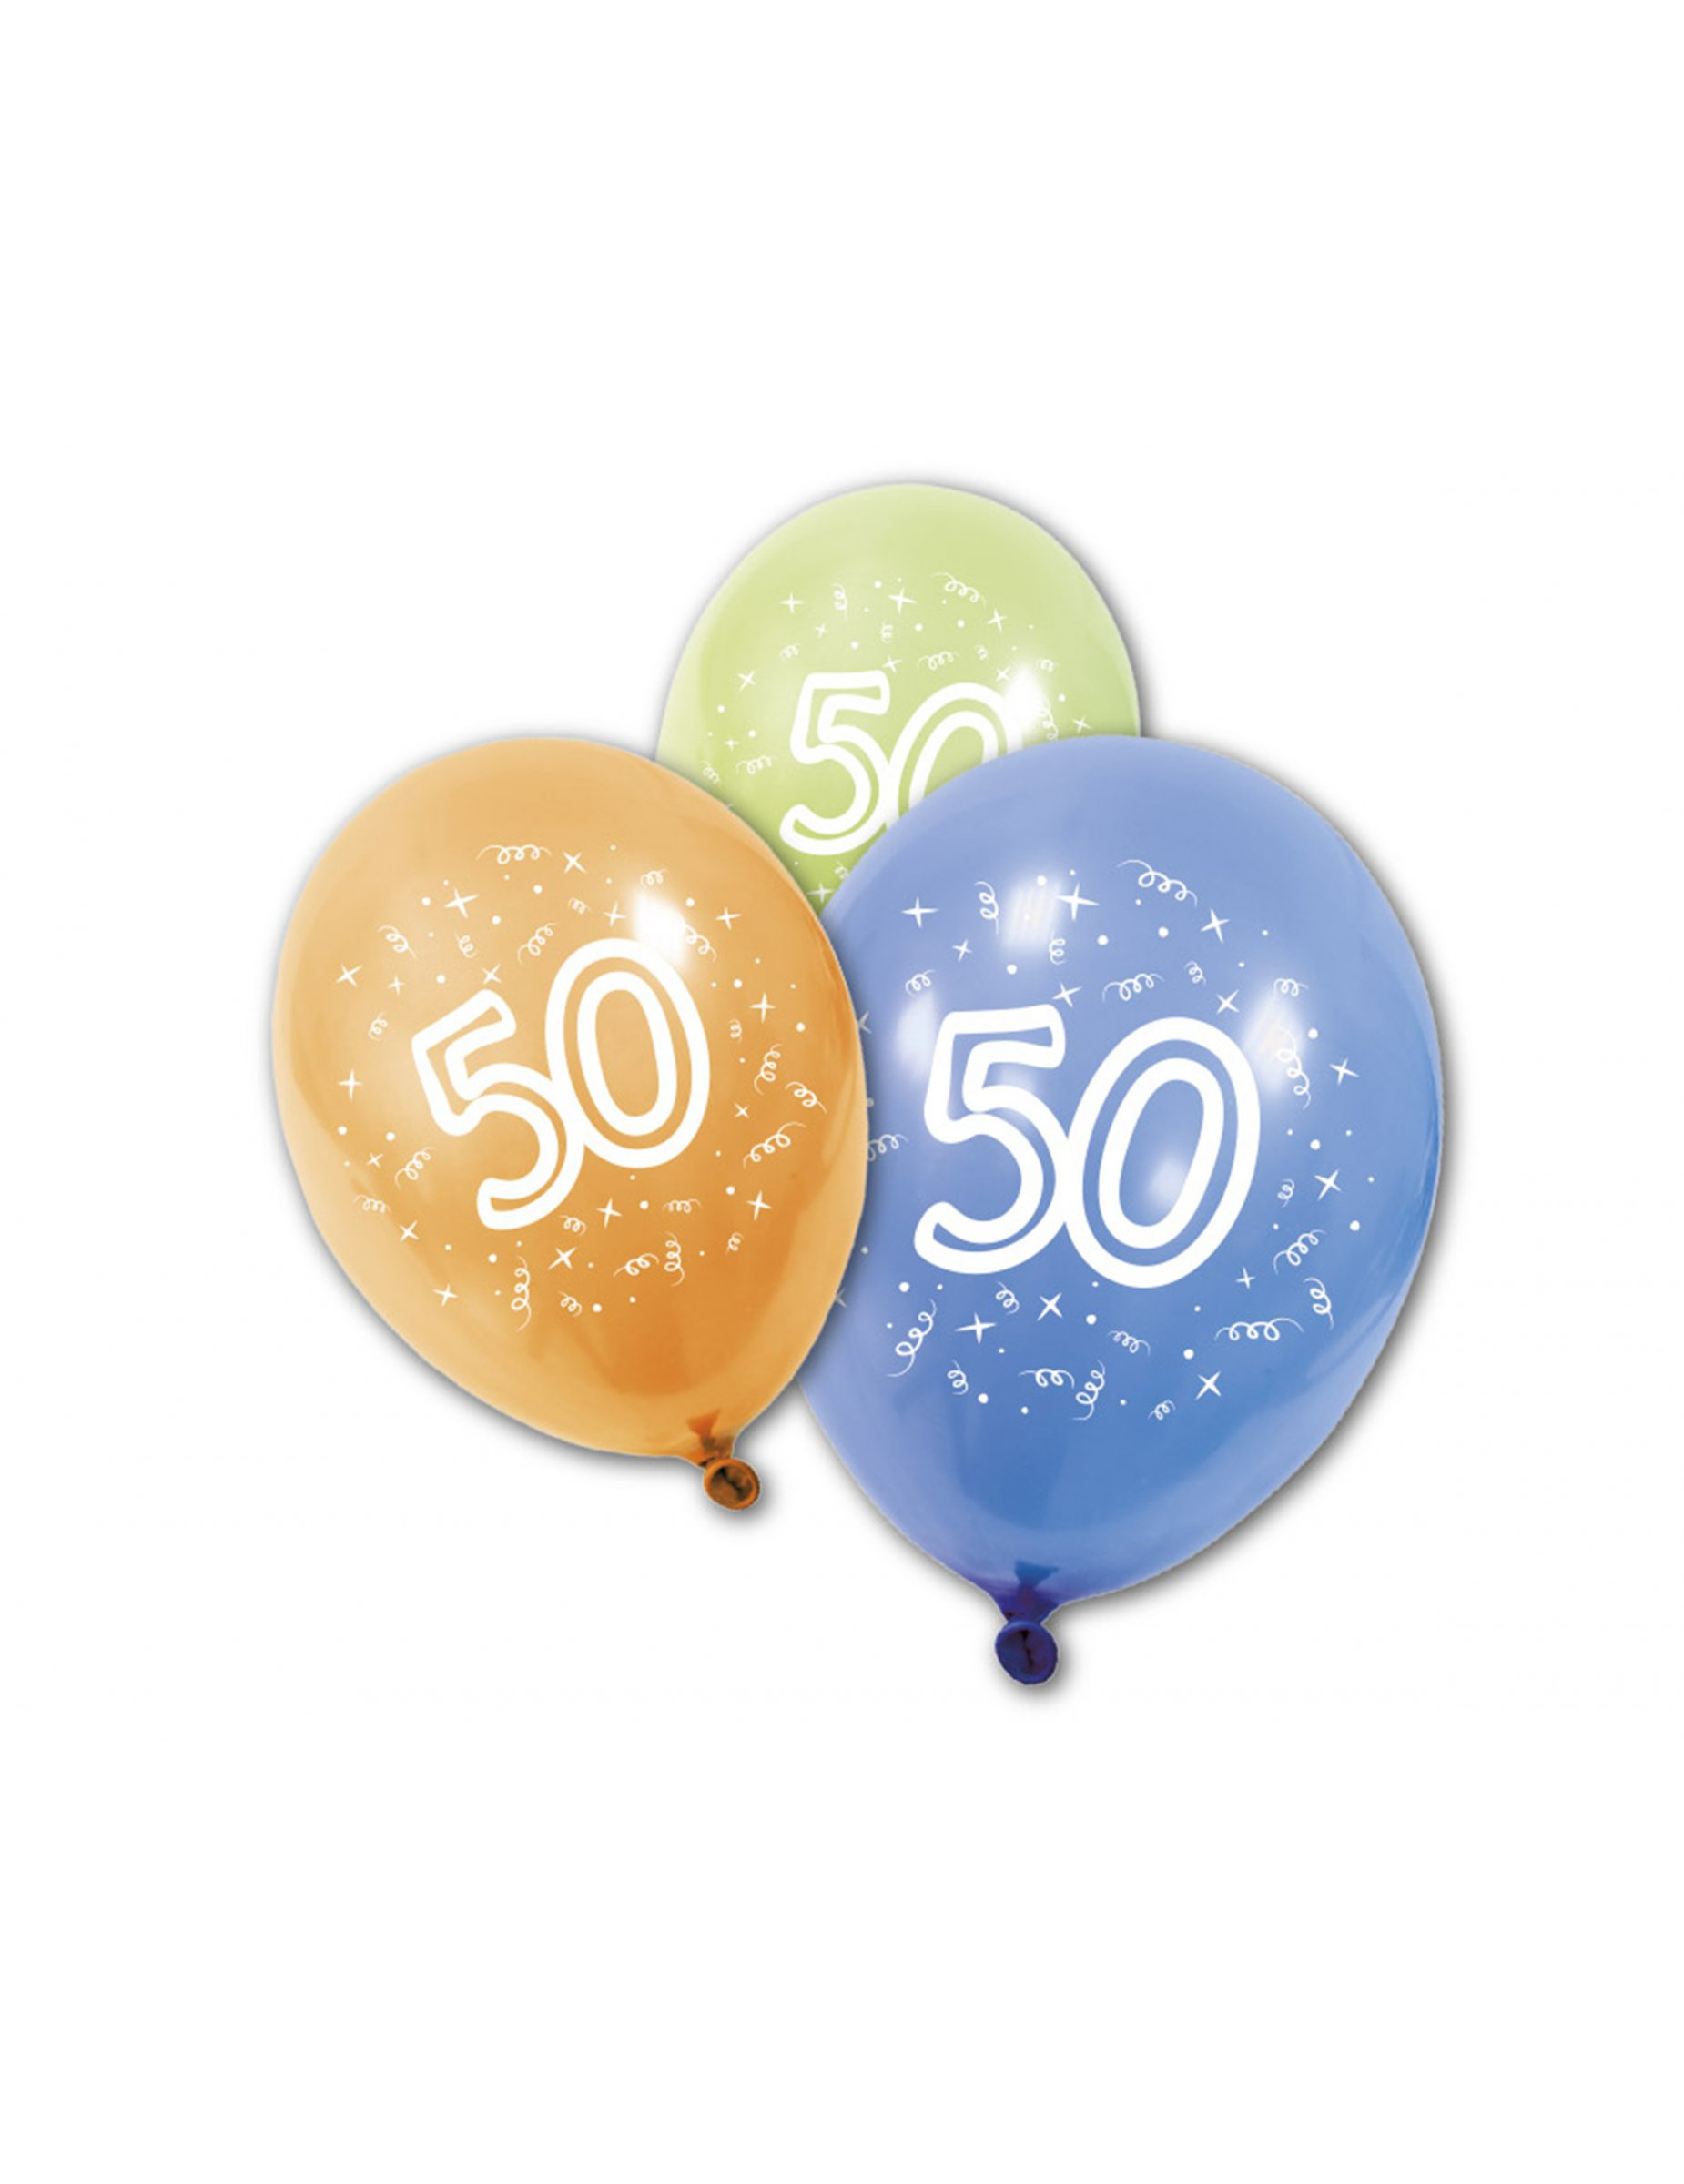 8 ballons anniversaire 50 ans d coration anniversaire et f tes th me sur vegaoo party. Black Bedroom Furniture Sets. Home Design Ideas